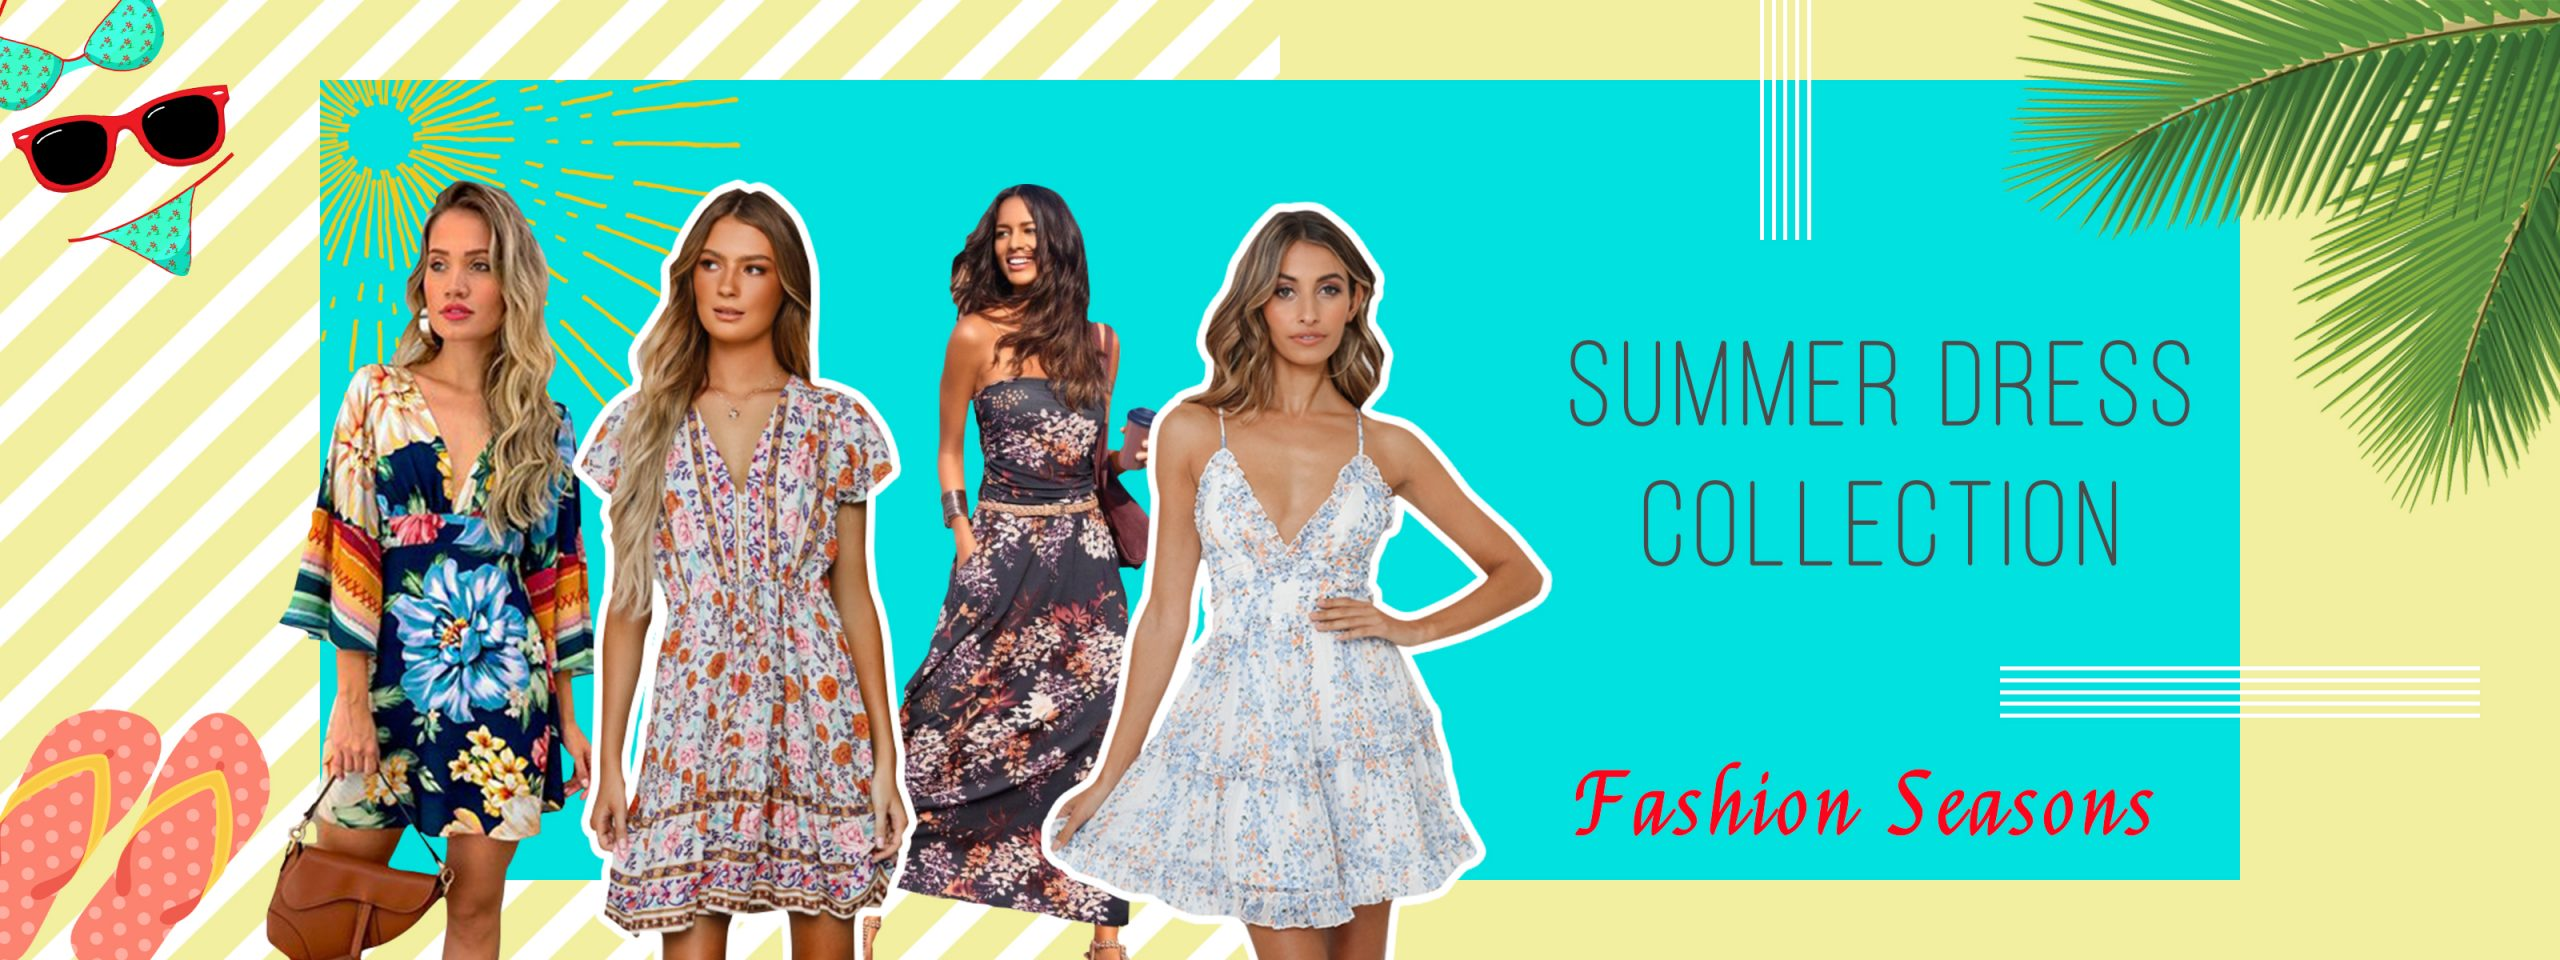 Fashion-Seasons-Summer-Dress